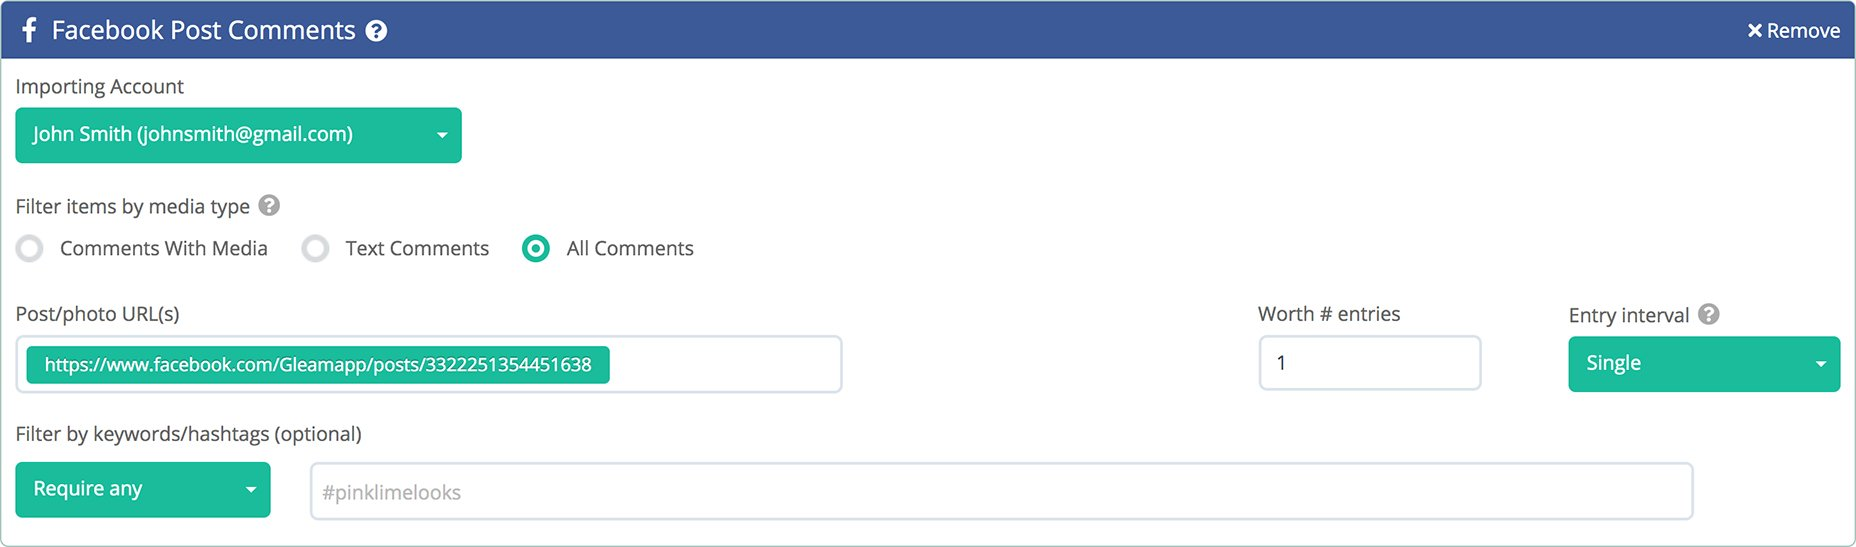 Gleam's Facebook Comment Import Action